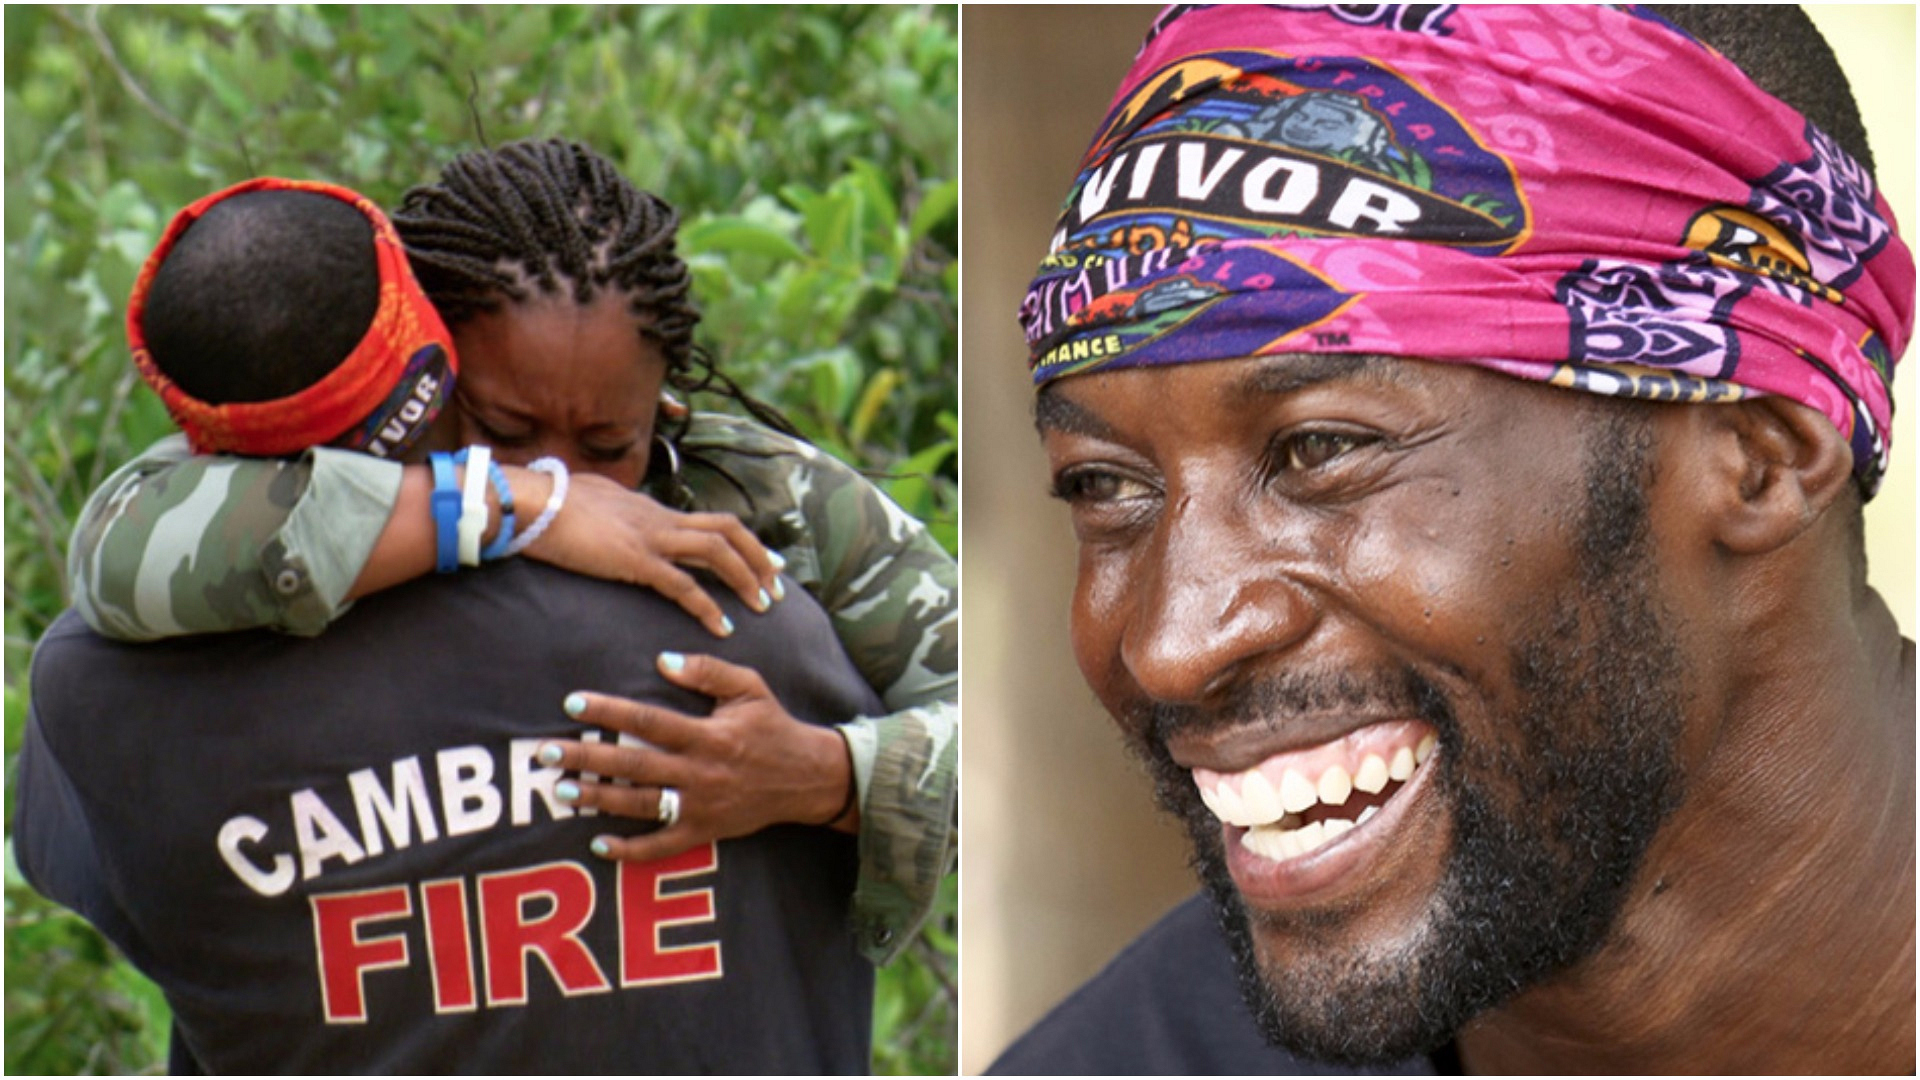 Jeremy Collins (Survivor: San Juan del Sur, Survivor: Second Chance)